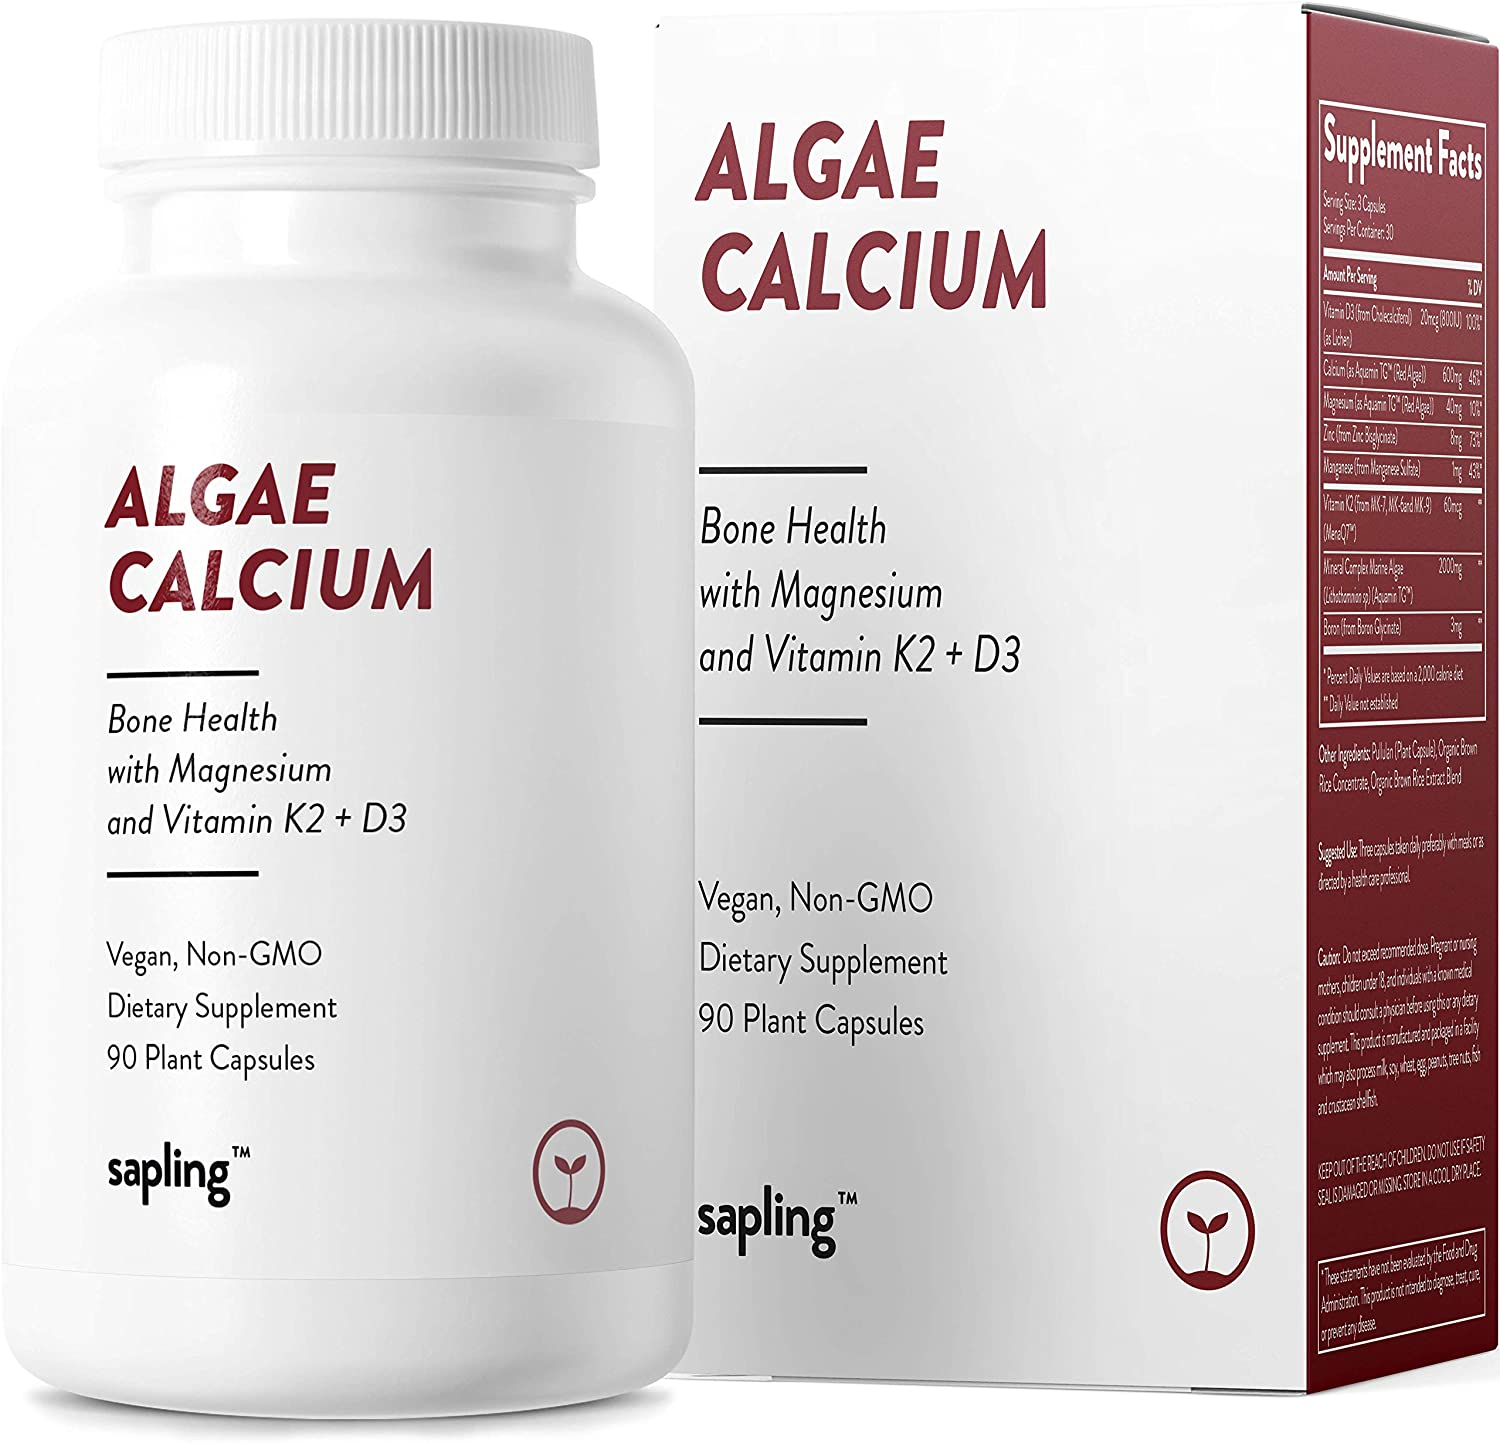 Calcium Supplement - Whole Food with Vitamin K2 & D3, Magnesium, Zinc, Boron, Mineral Complex. Sourced Sustainably from Red Algae. for Bone Strength and Support. Non-GMO & Vegan 90 Capsules.